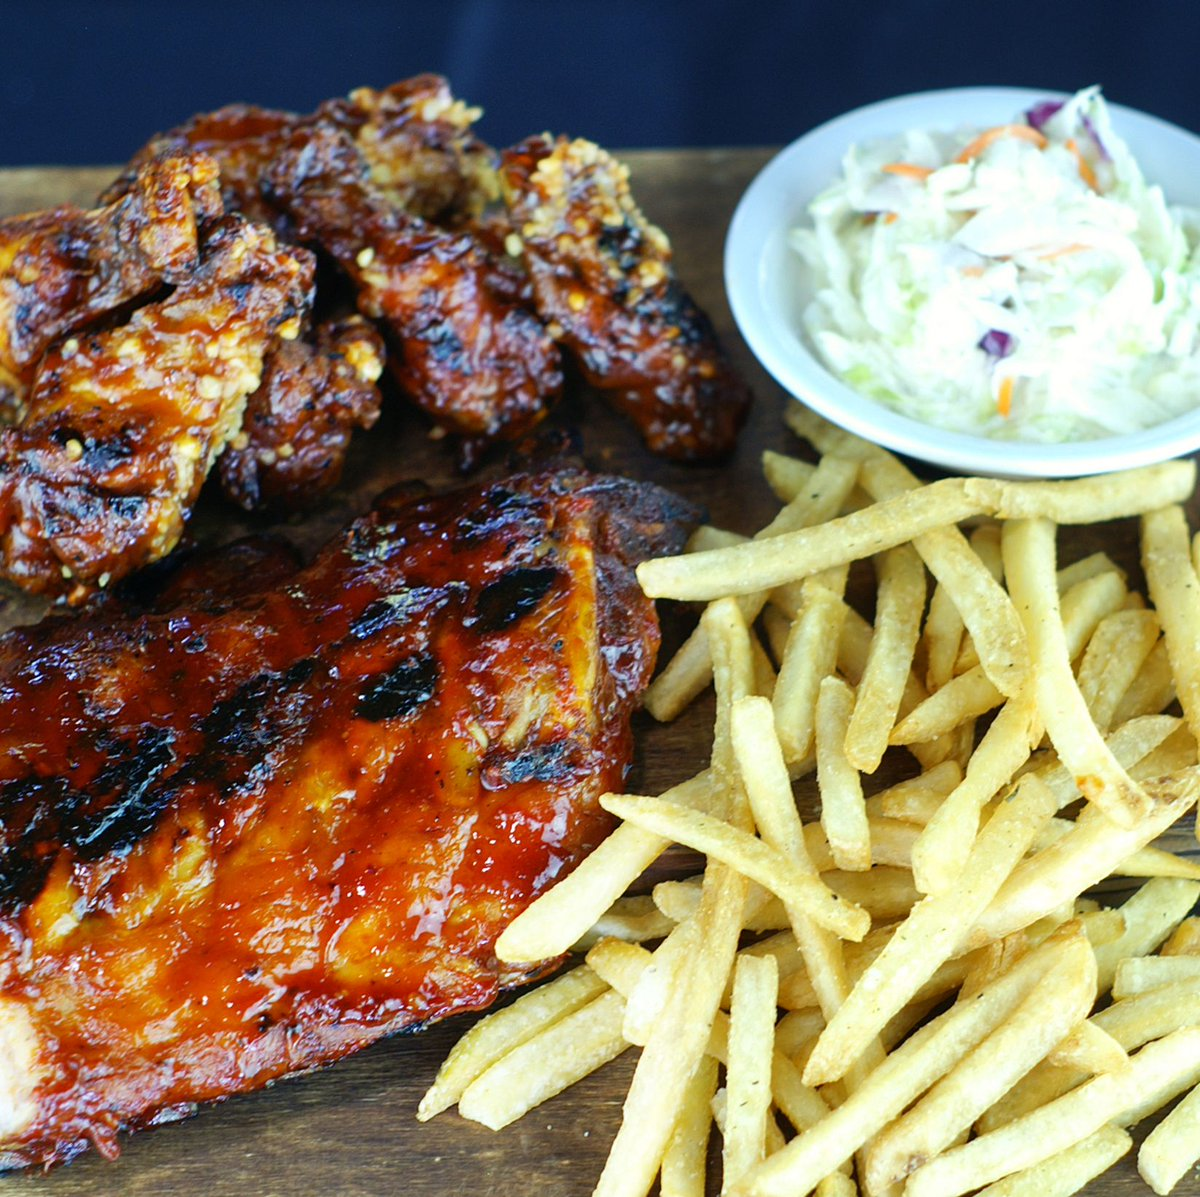 Do lunch with our Half Time Wings & Ribs. Get a Half Rack of Ribs, 6 Wings, Fries and Slaw – all for $24.  #GreatTasteIsJustTheBeginning #Ribs #HalfRackRibs #BBQ #BBQRibs #Wings #EatLocal #SouthFlorida #Lunch #BrusRoom https://t.co/nmWVgK4z3K